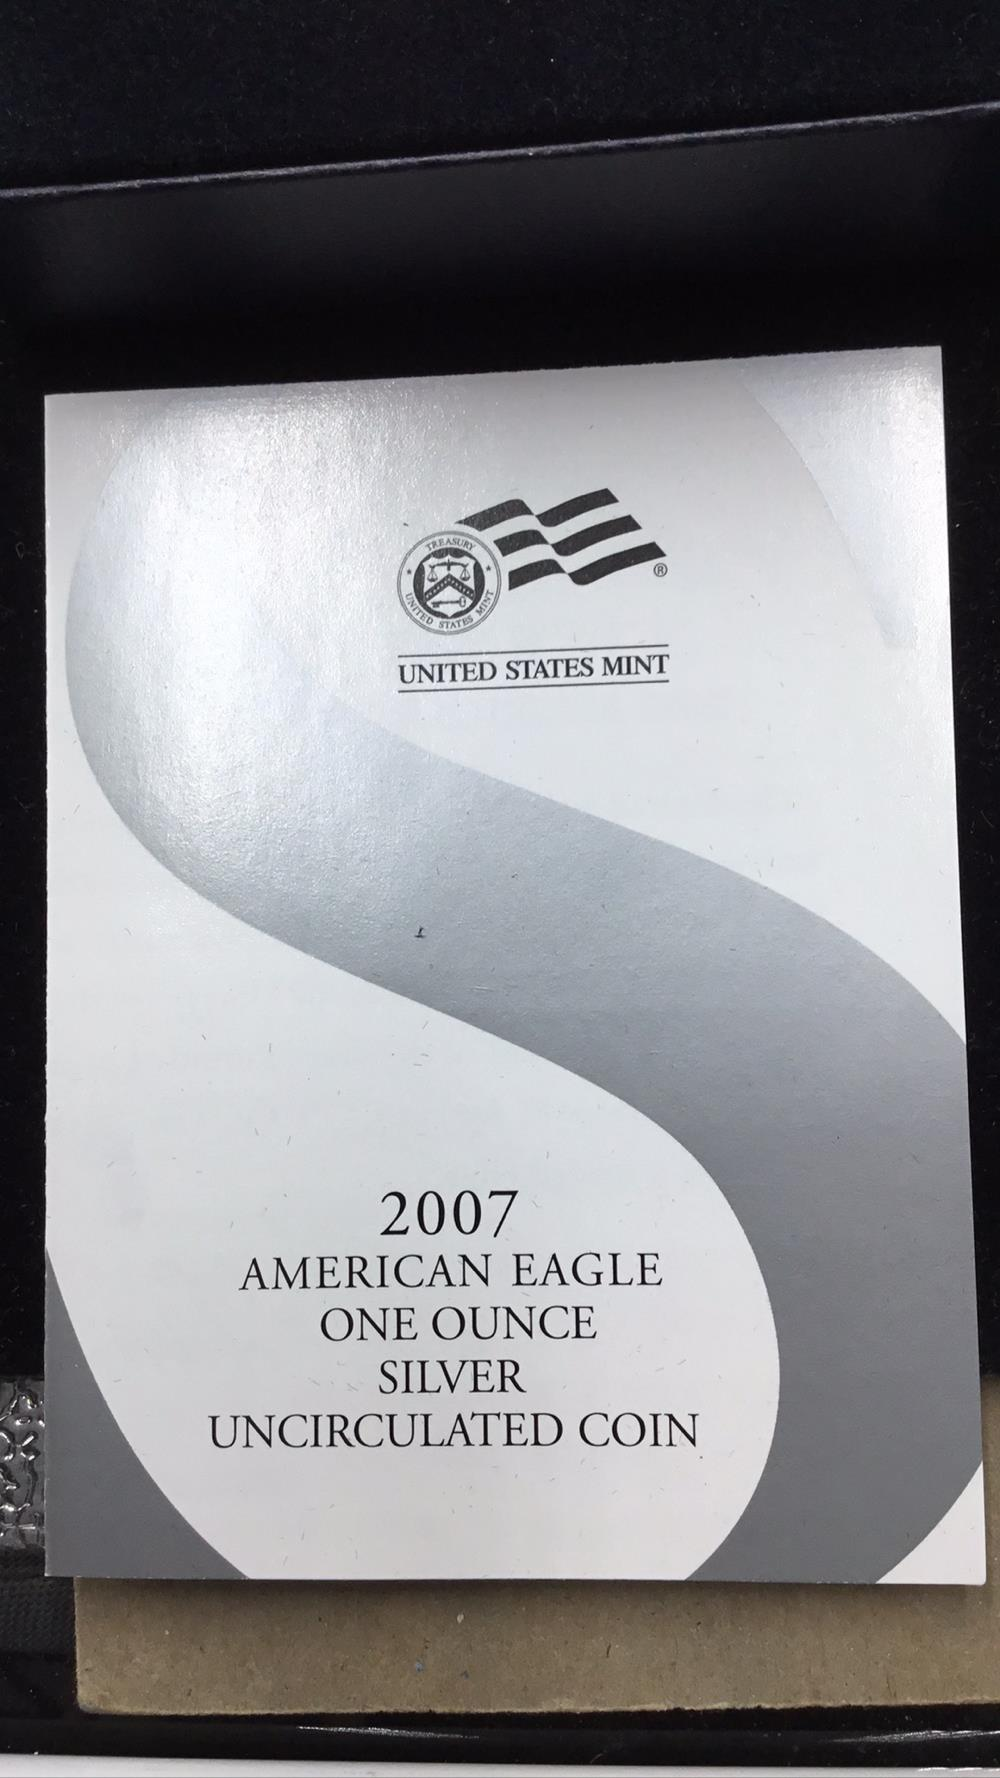 Lot 91: United states meant American eagle 1 ounce silver